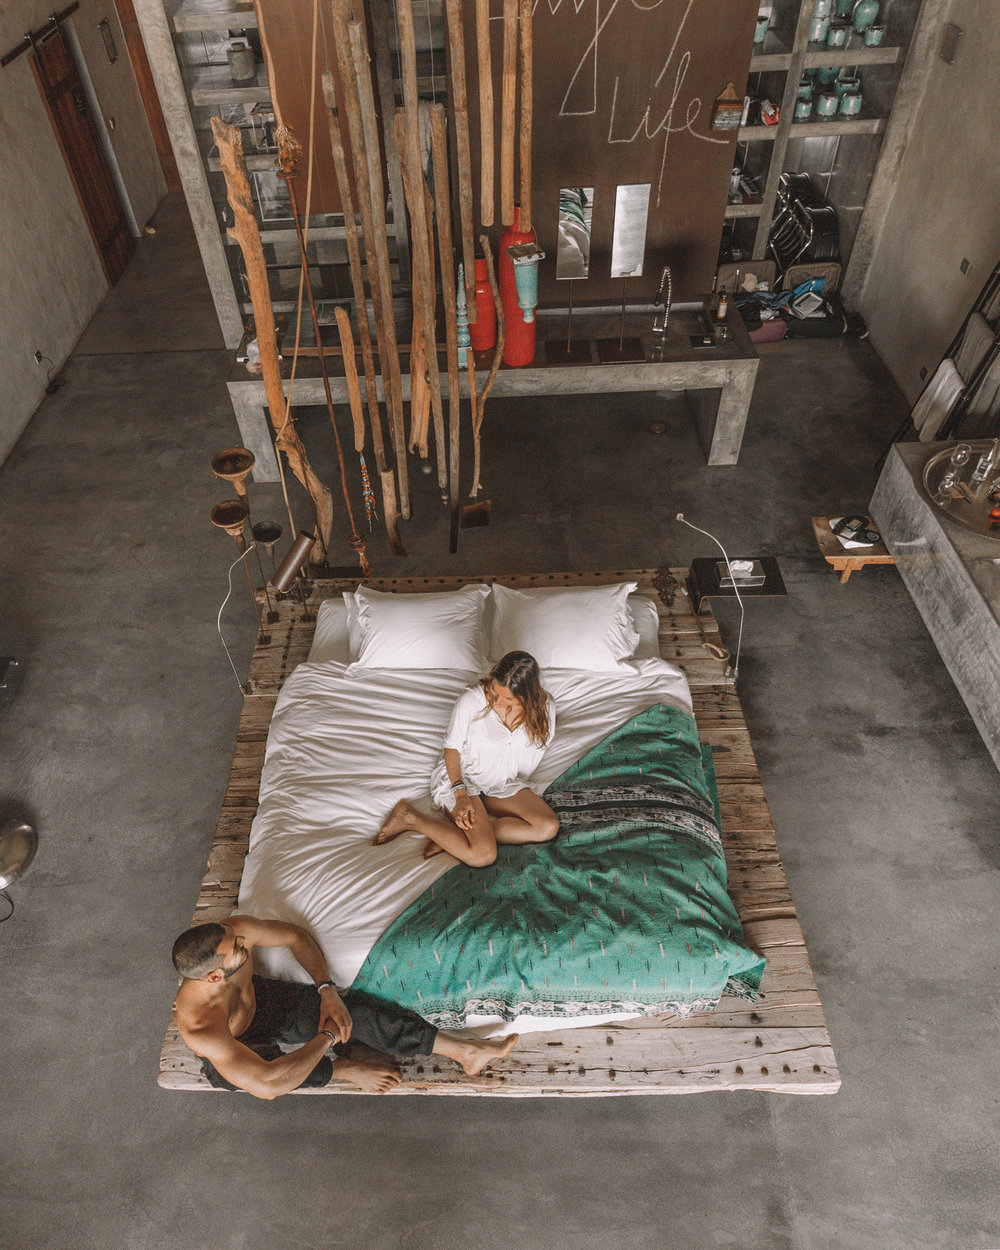 bed blanket travel couple lifestyle photography hotel room